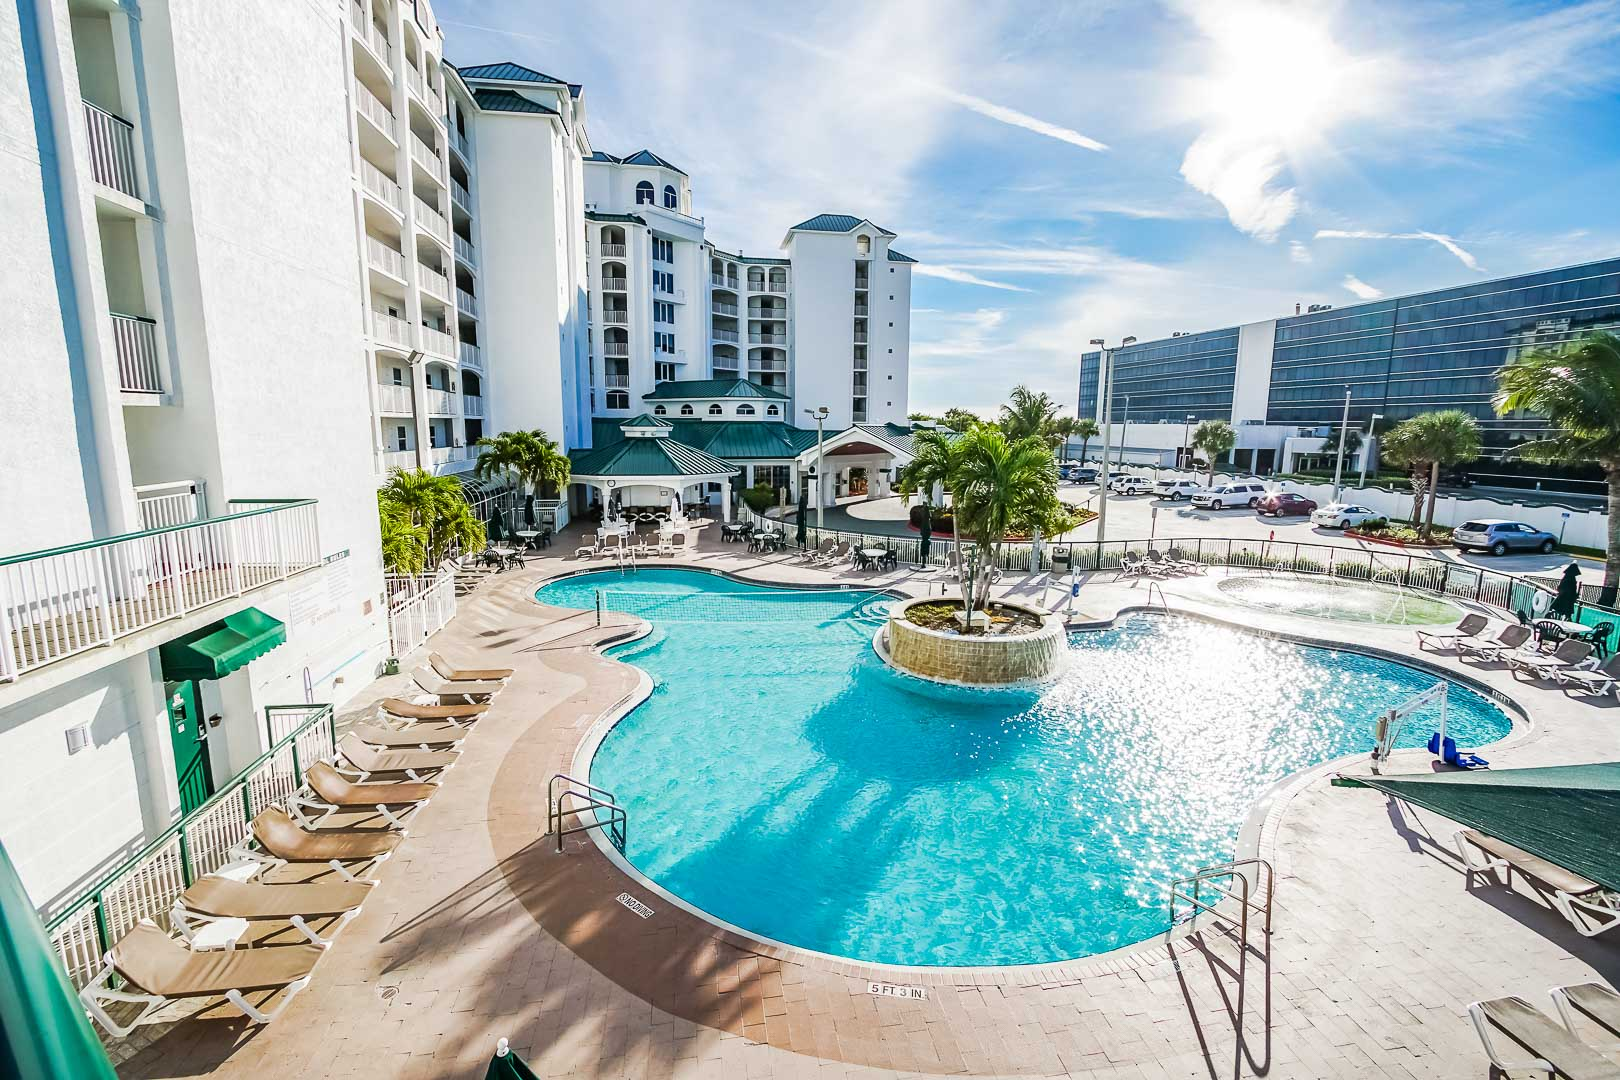 A crisp refreshing pool at VRI's The Resort on Cocoa Beach in Florida.